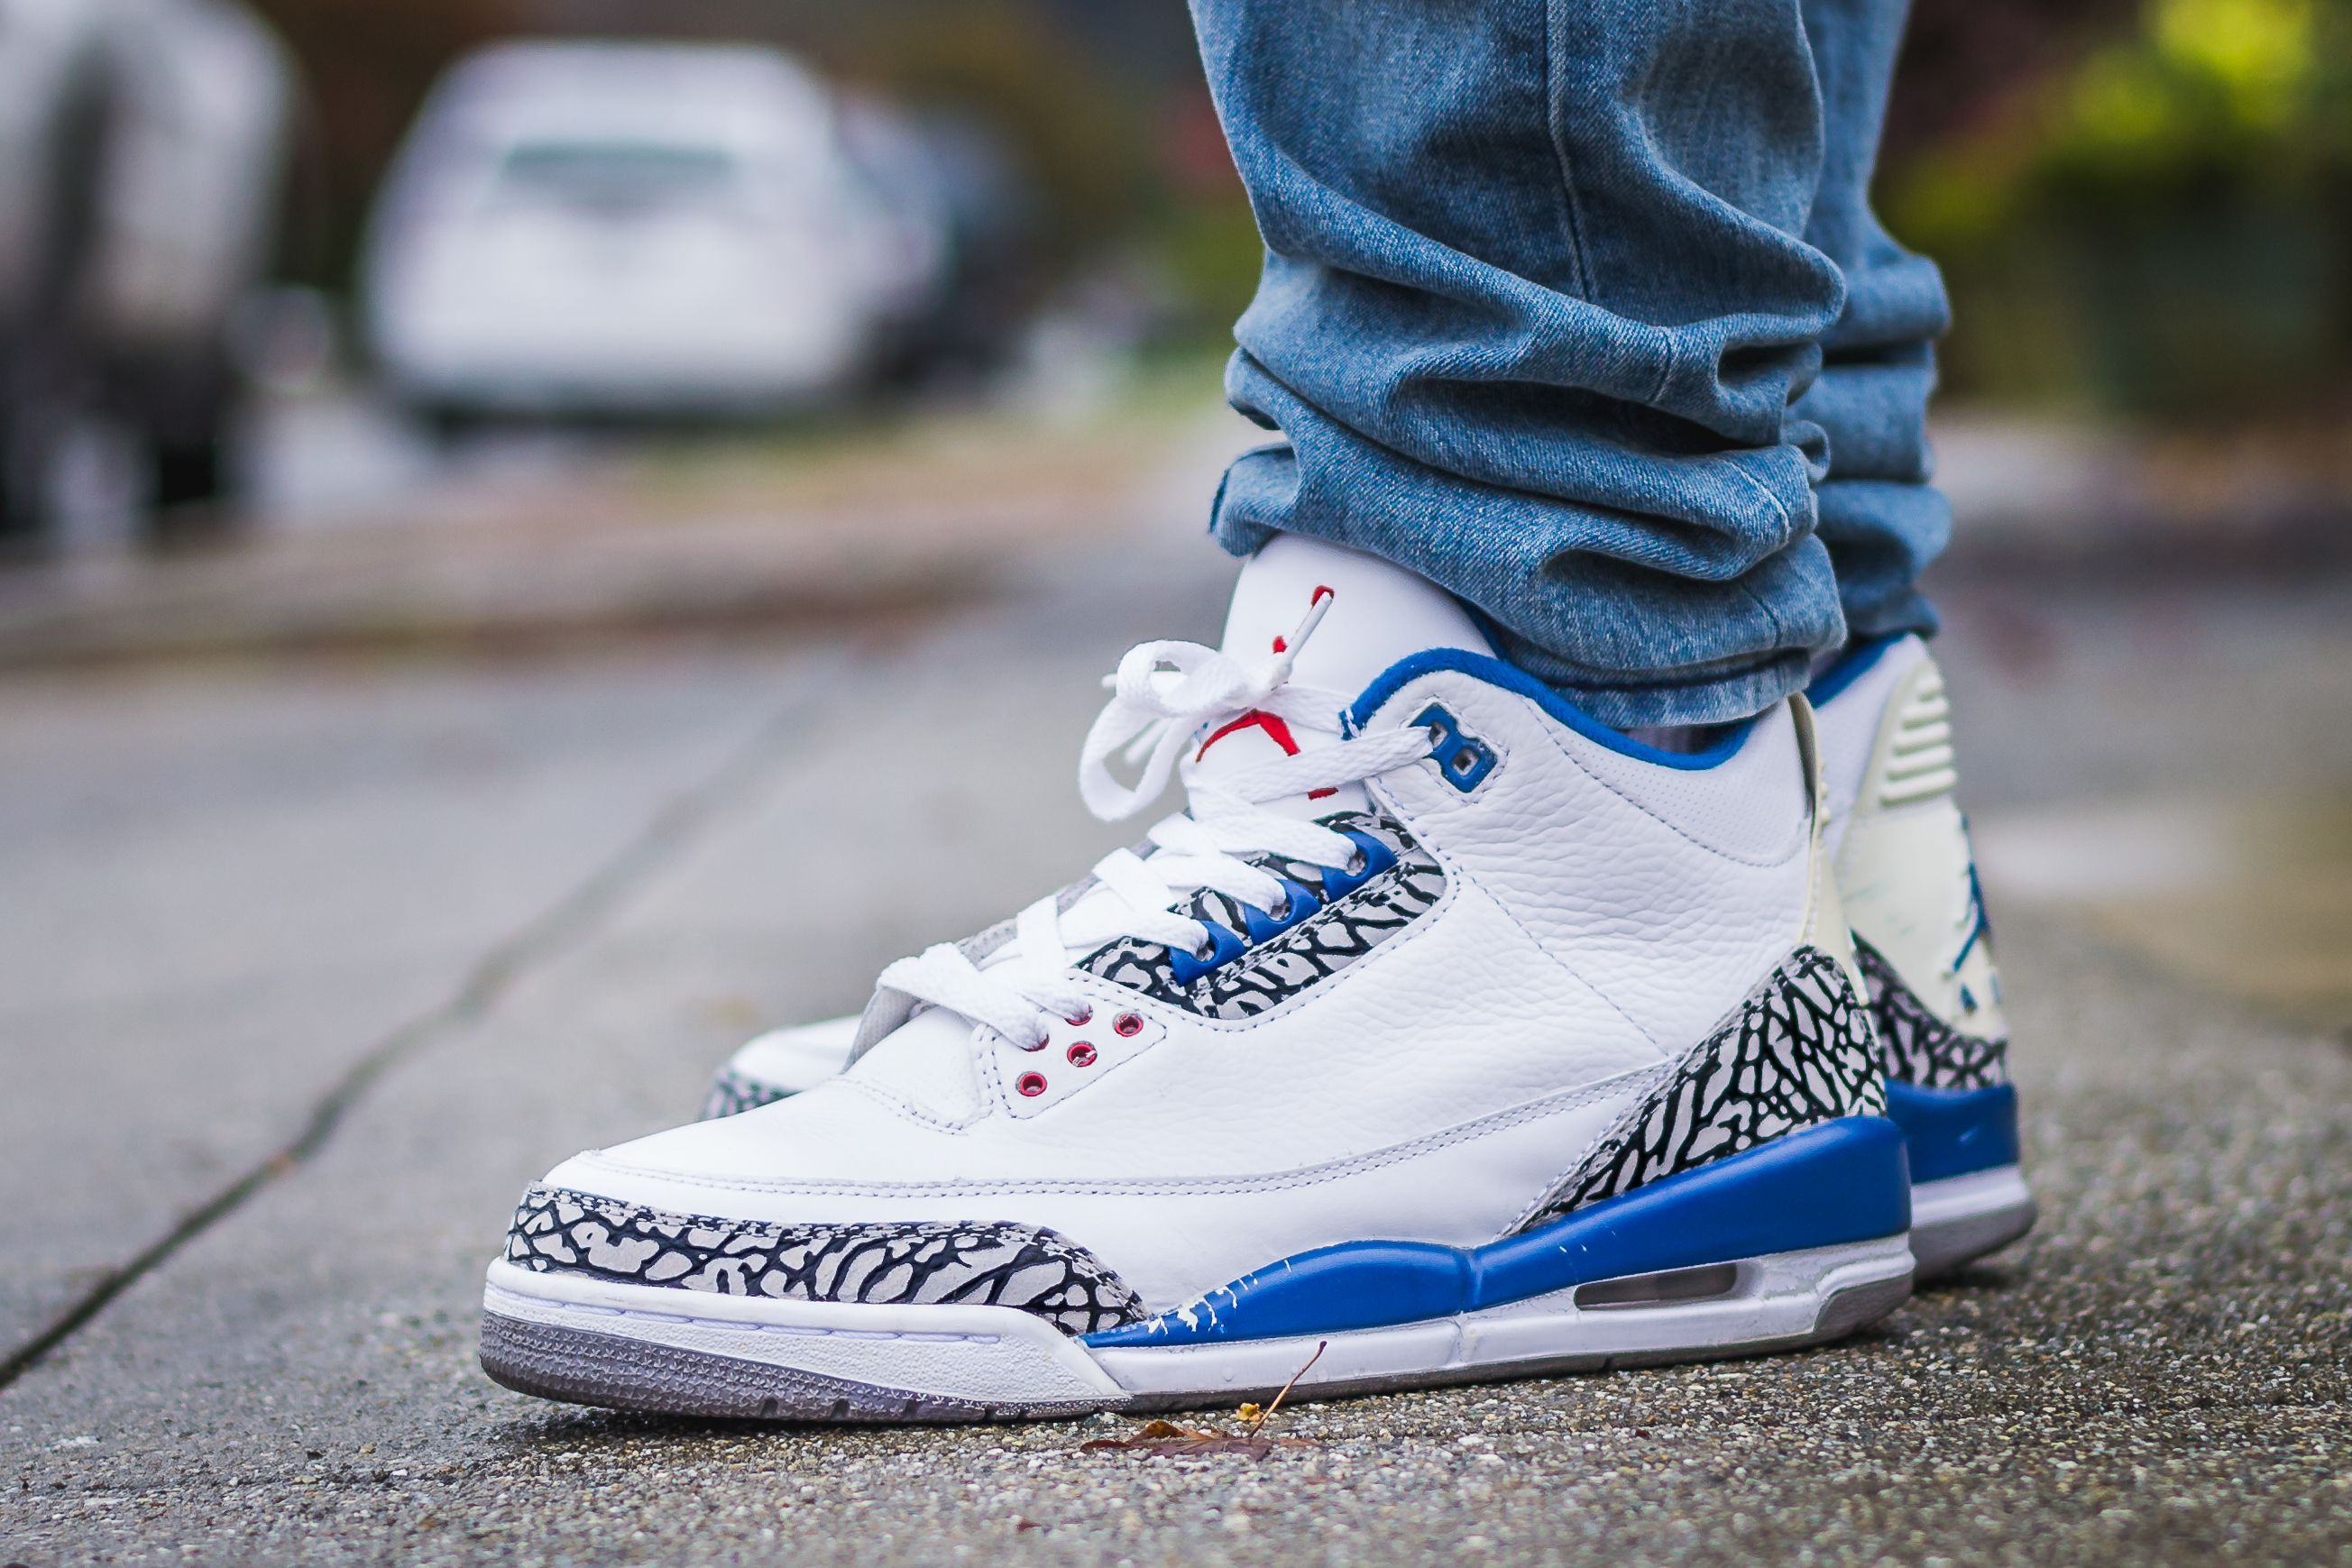 8b2ffe772be19f WDIWT - See my on foot video review of these 2009 Air Jordan 3 True Blue +  where to find em